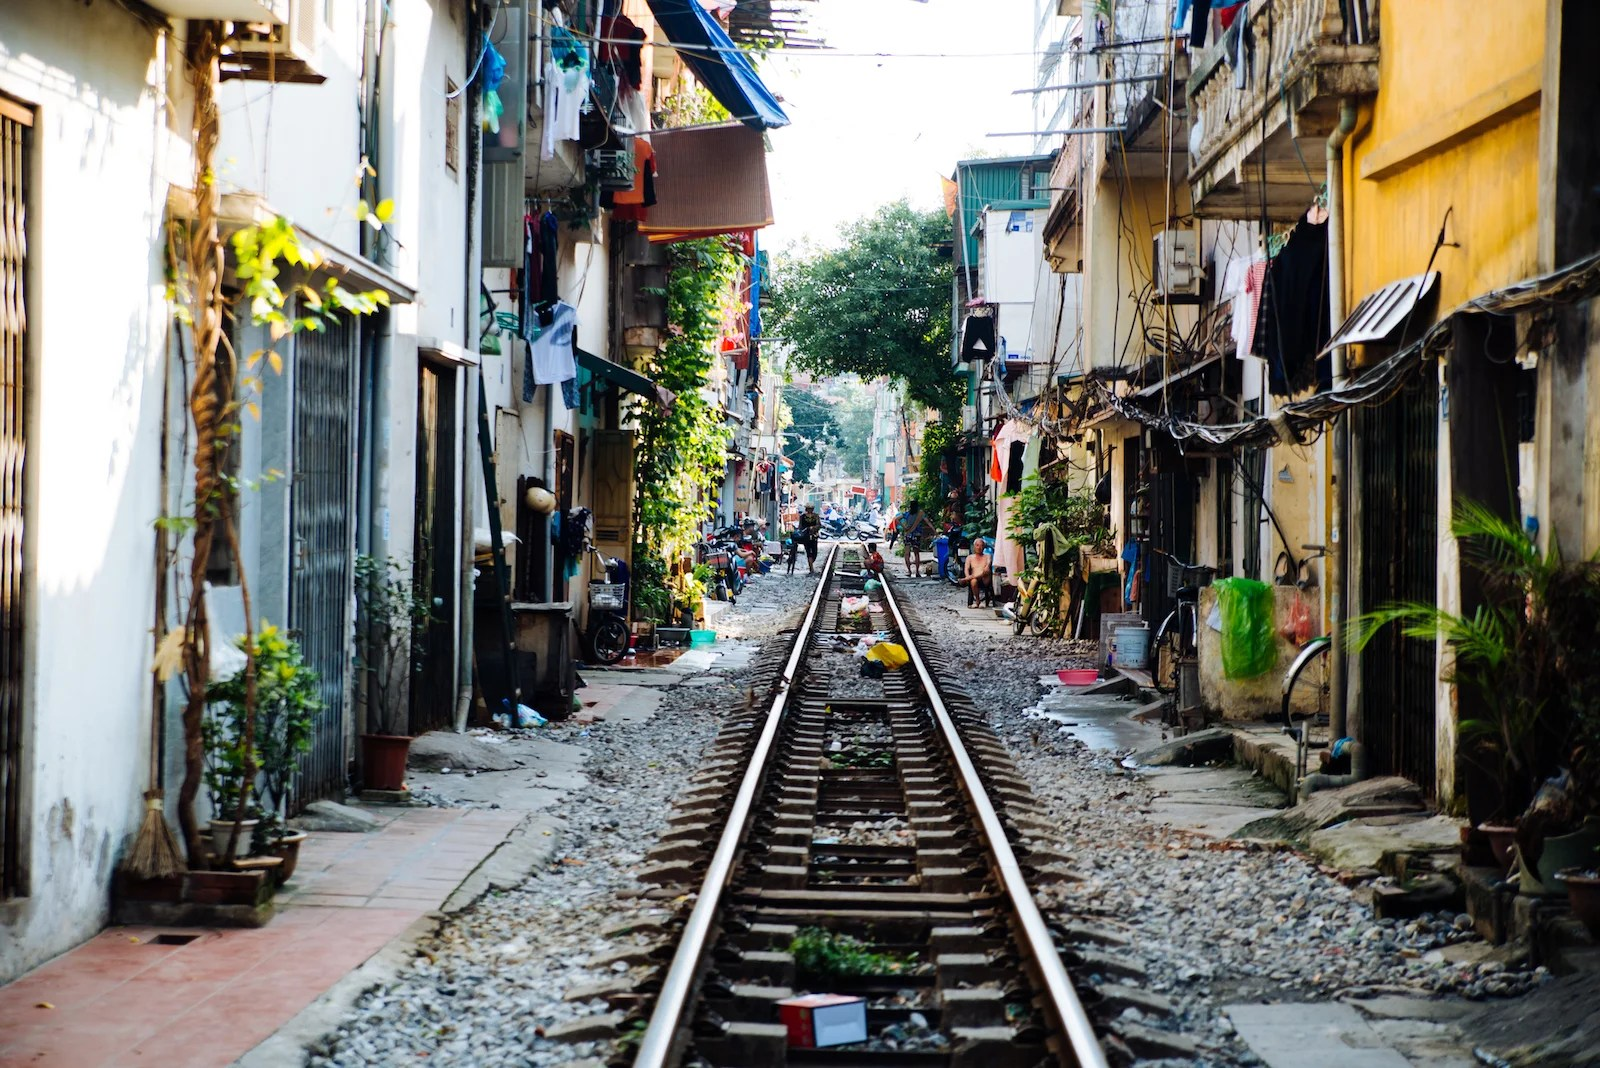 Vietnam's Instagram-famous 'train street' is being closed to tourists